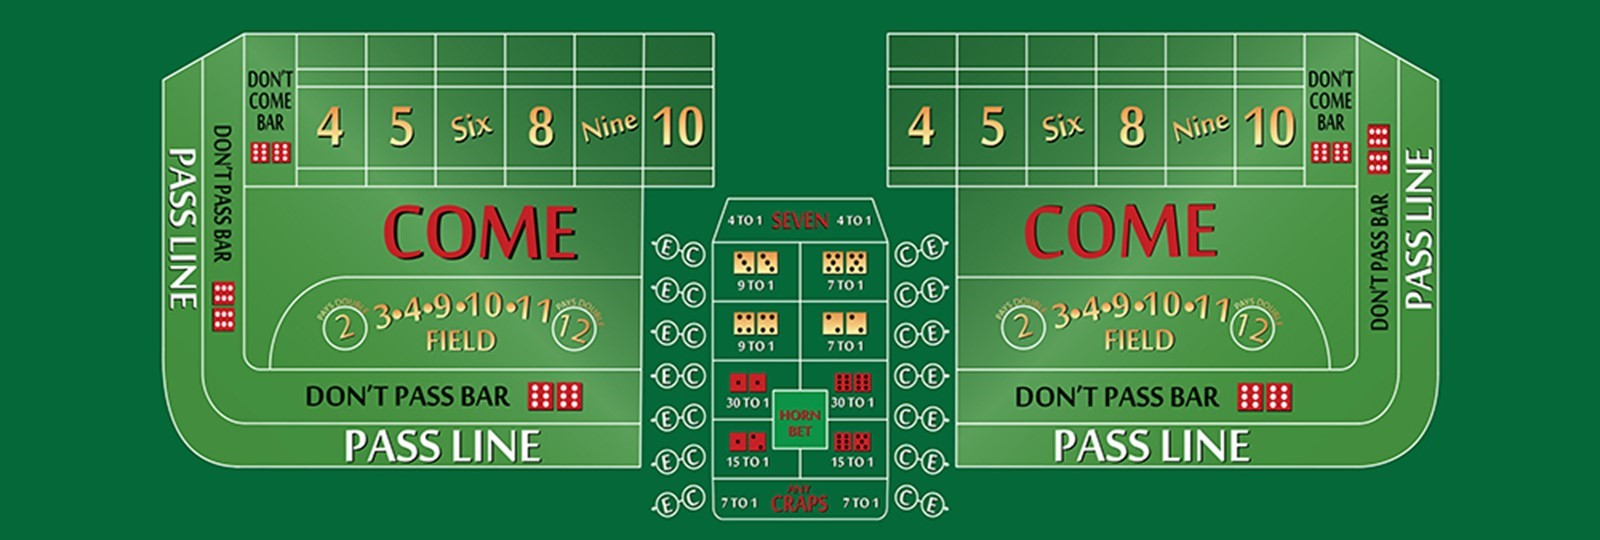 7 to 1 any craps betting 2003 colts vs bucs betting